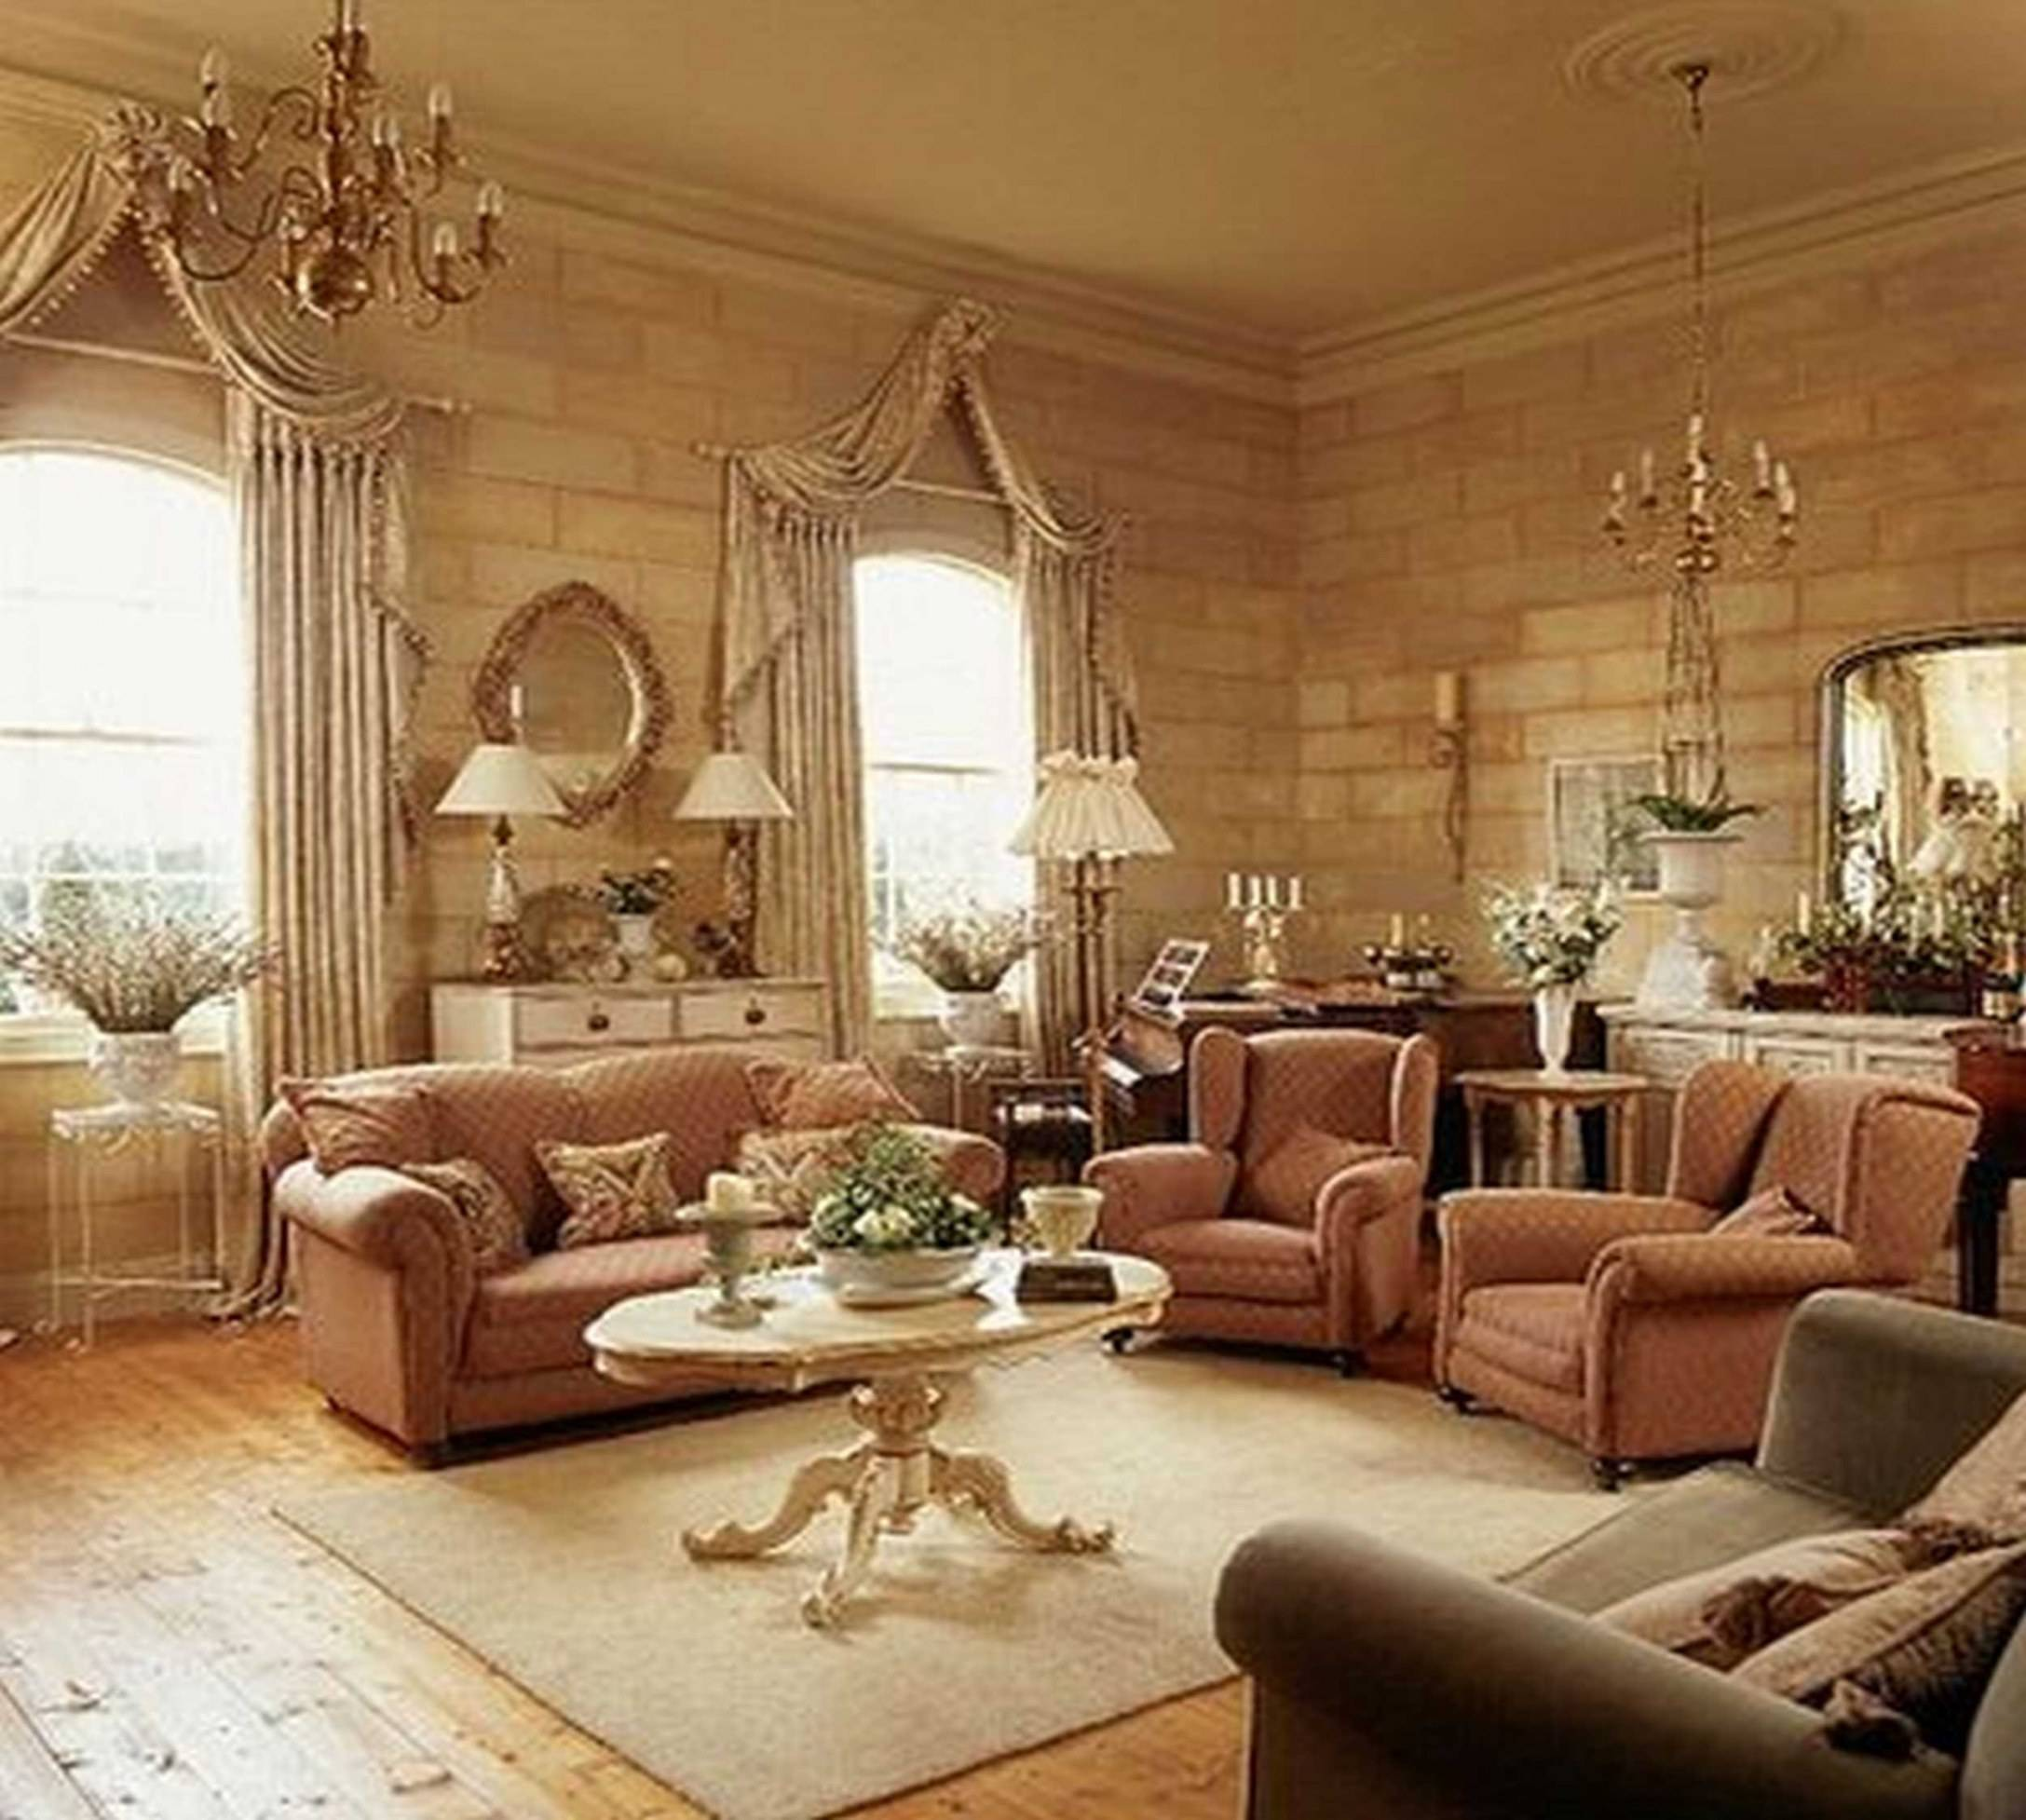 house living room 45 top home decor ideas living room decoration furniture of house living room 1